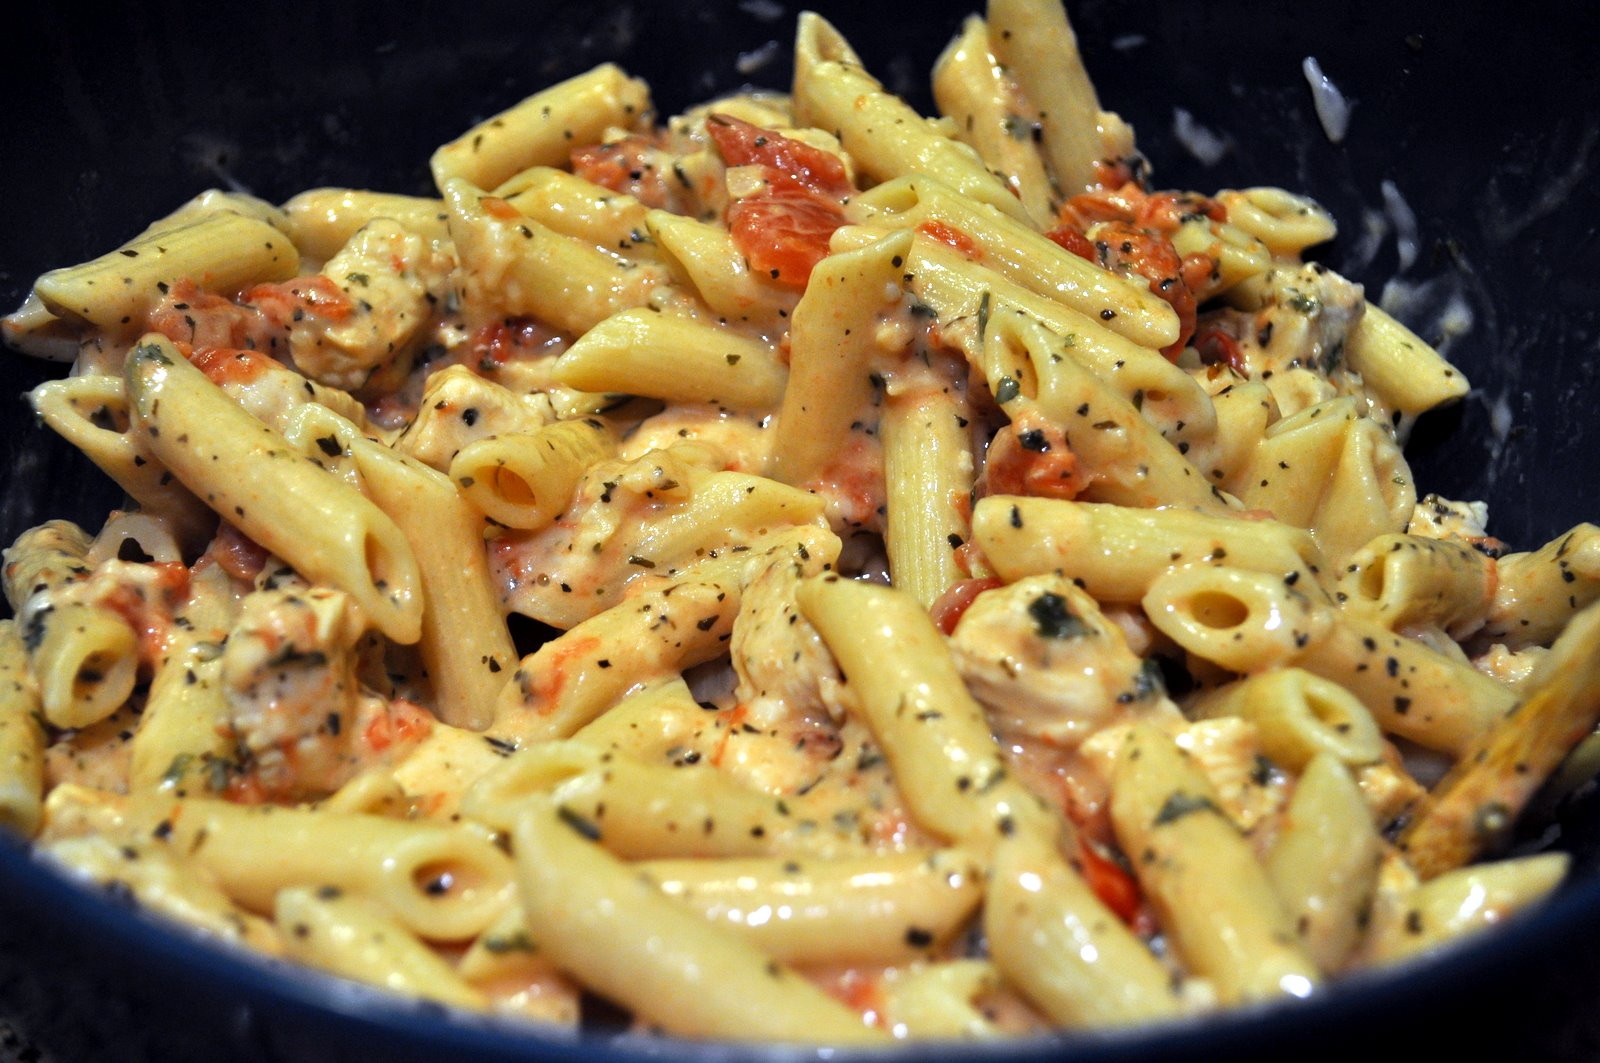 Basil Chicken with Tomato-Alfredo Sauce forecasting